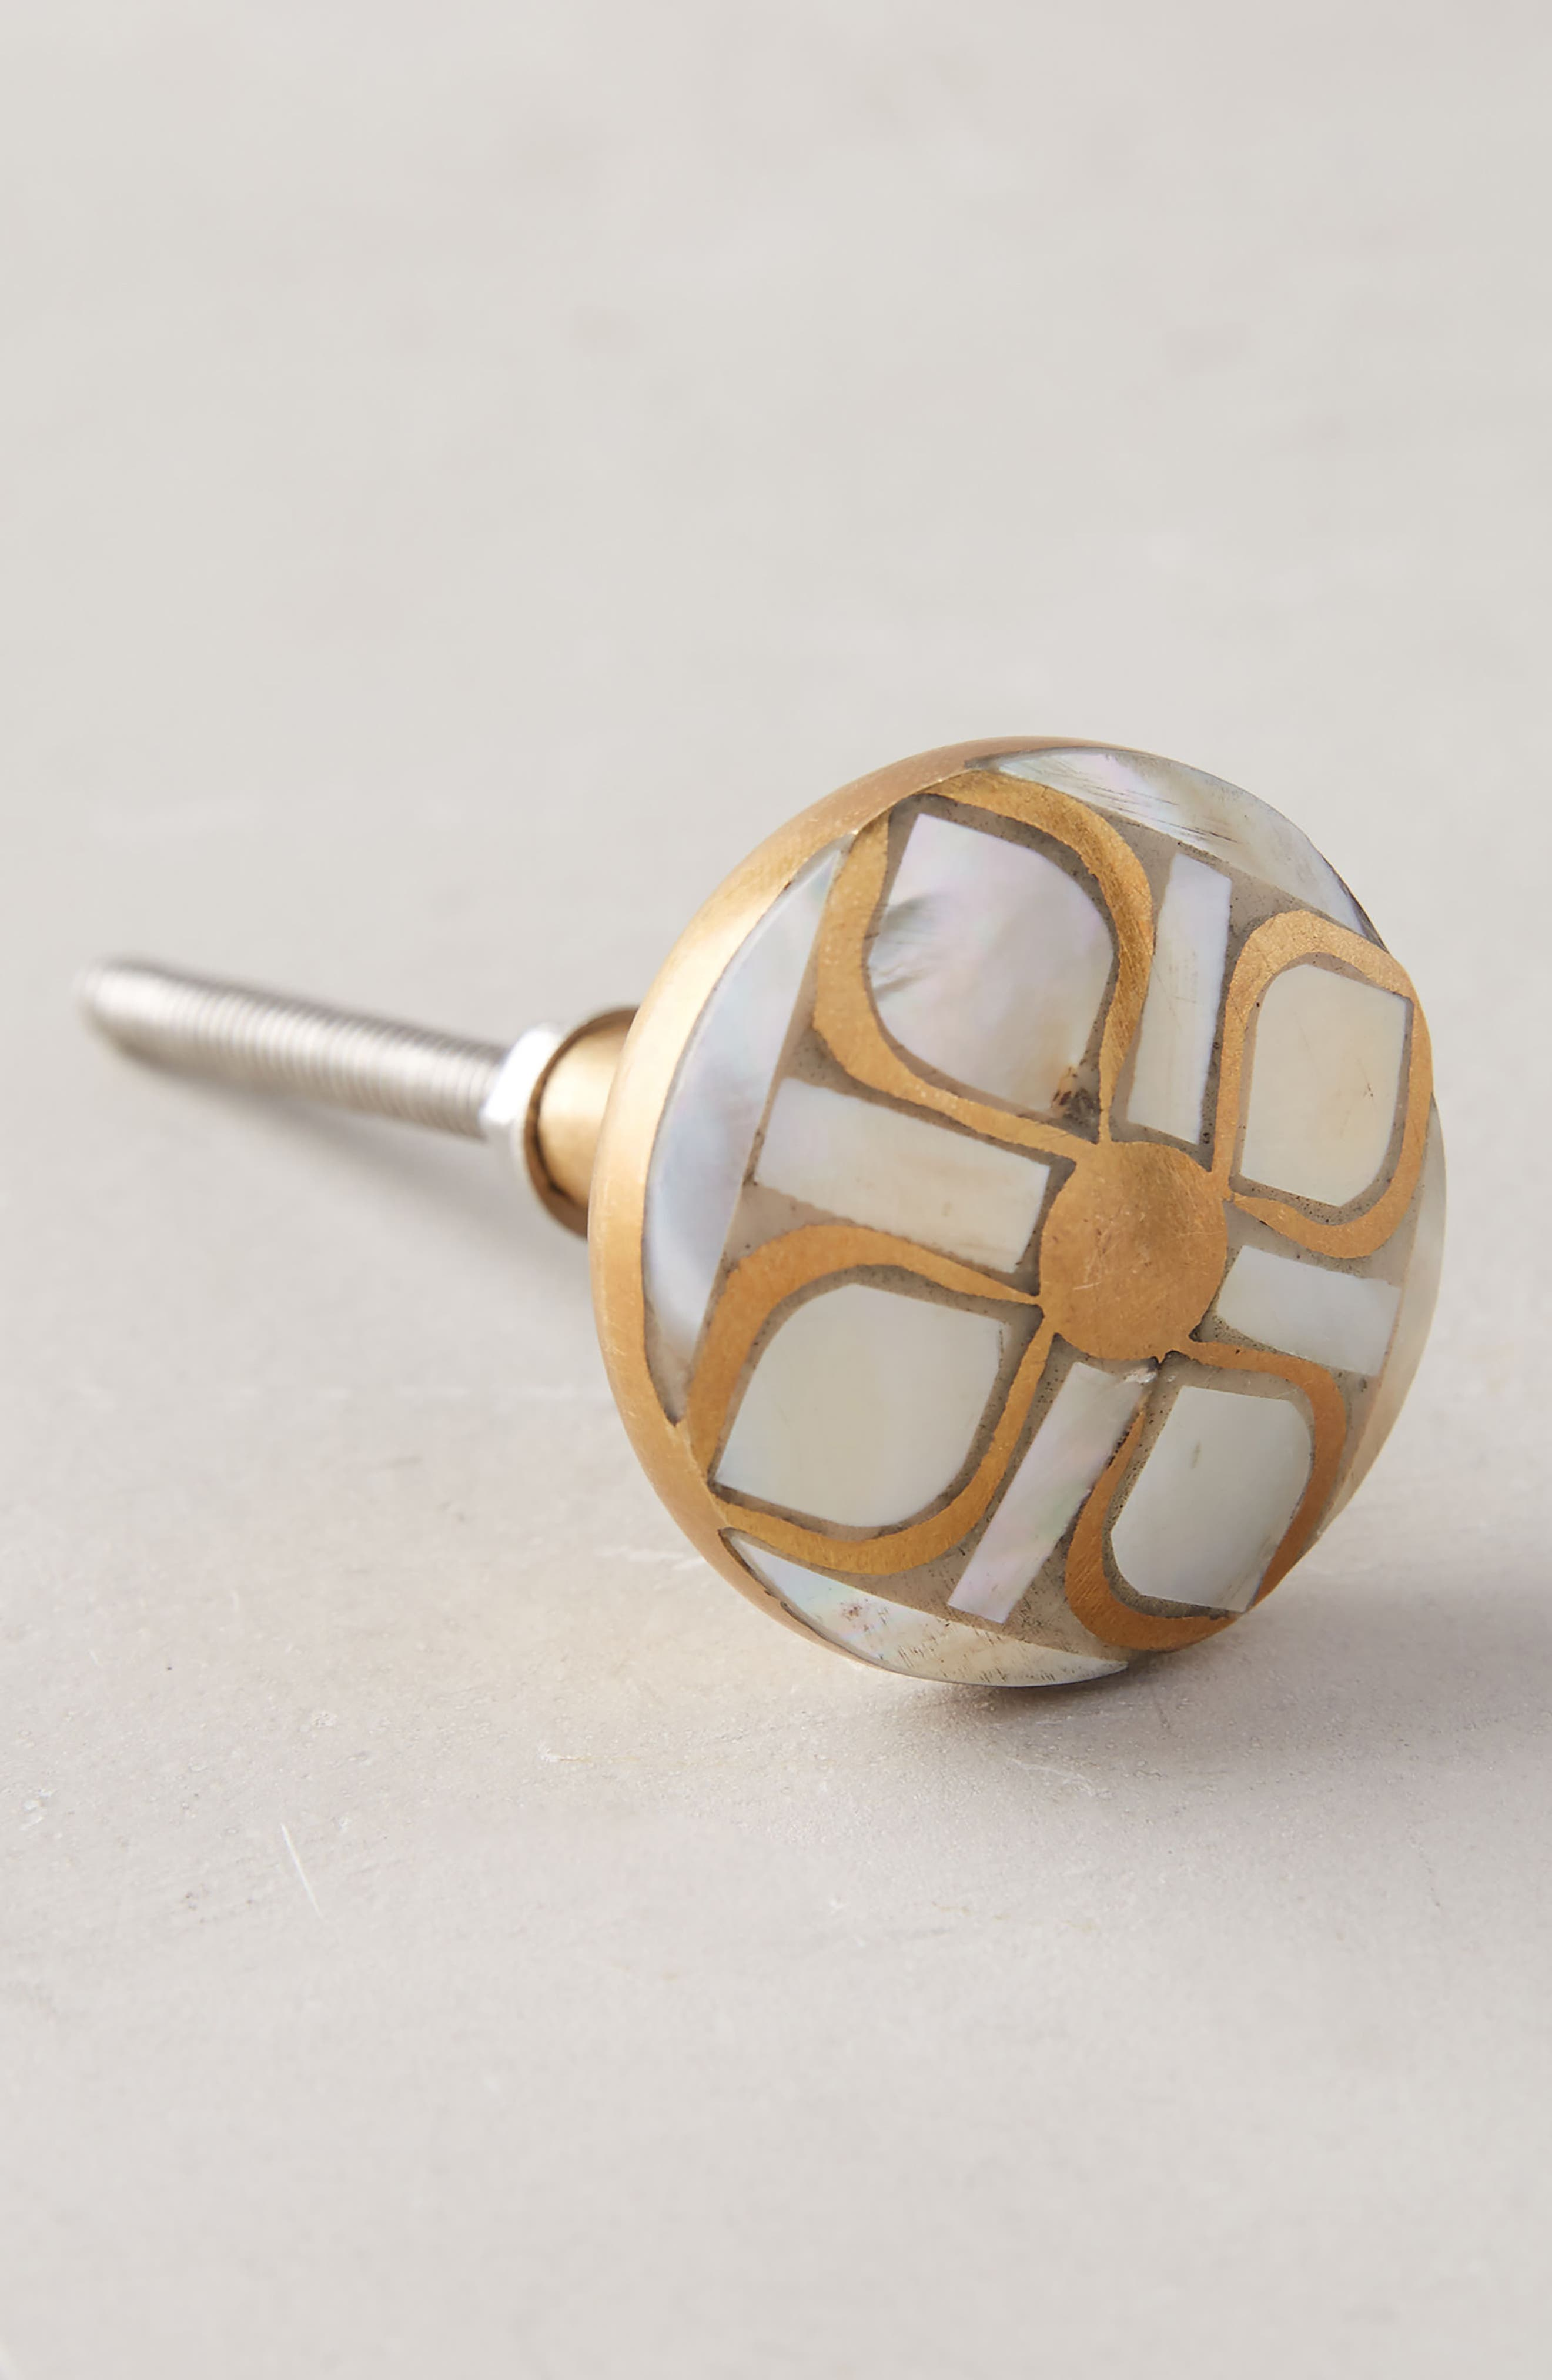 Serpentine Mother of Pearl Knob,                         Main,                         color, Neutral